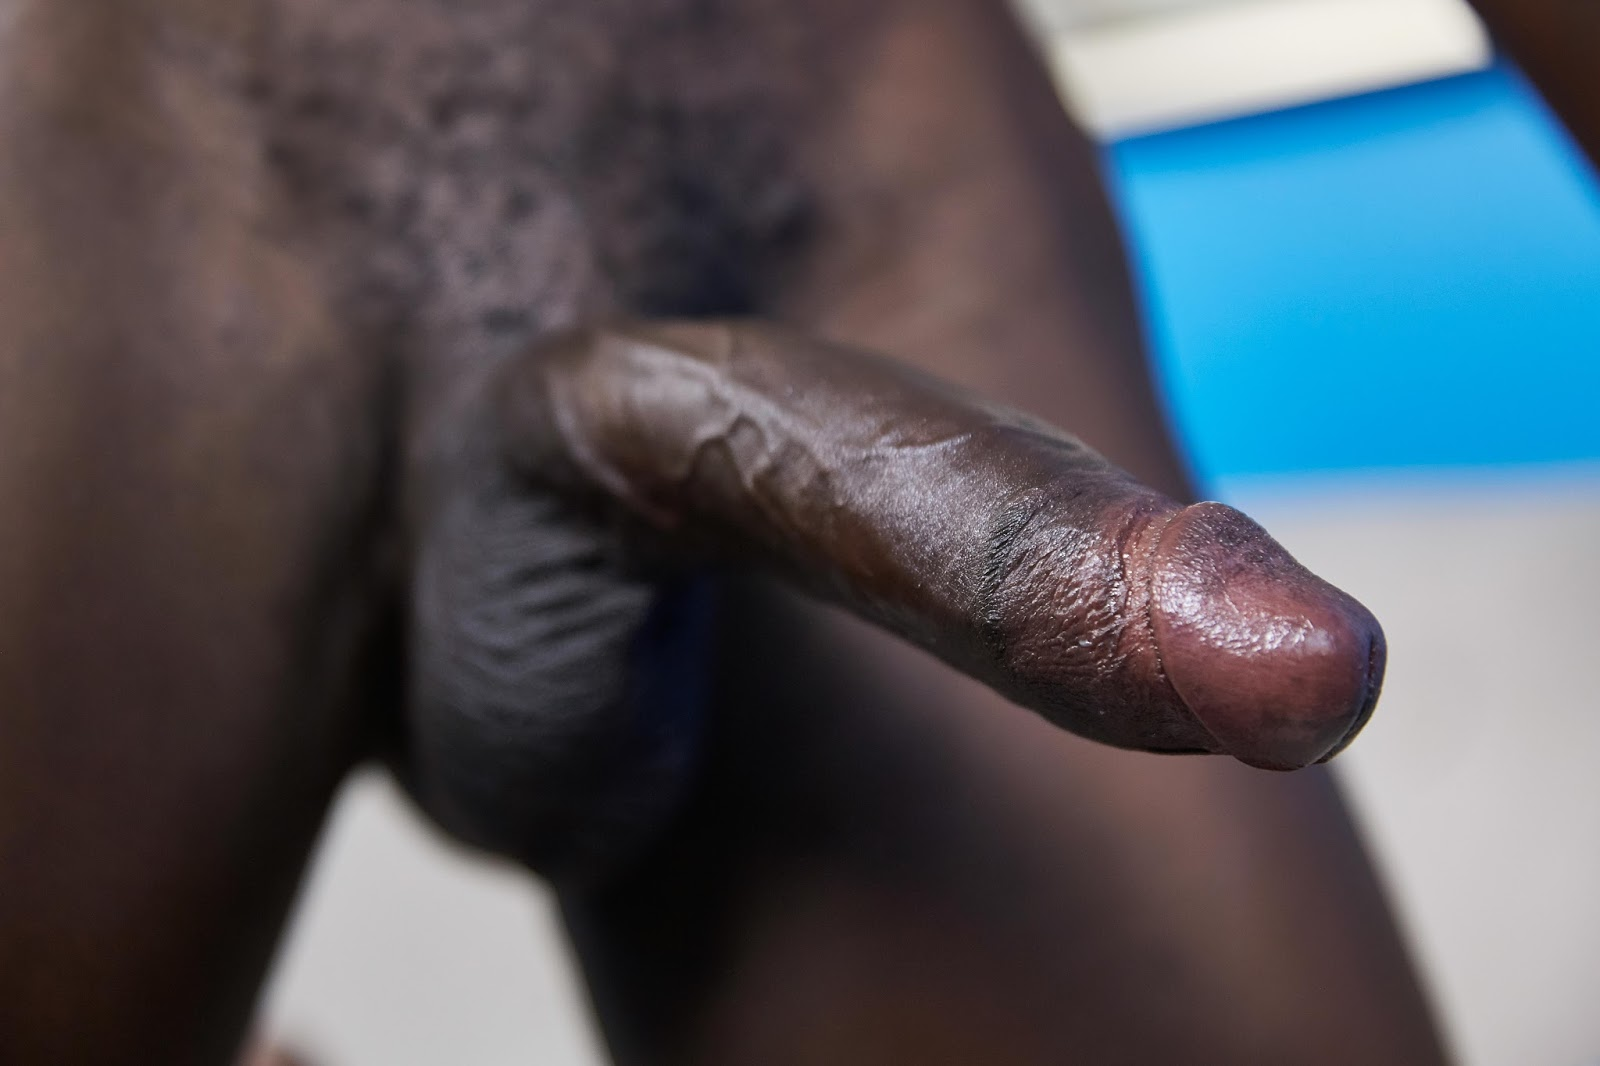 Shaved black dick, kamsutra nud girls